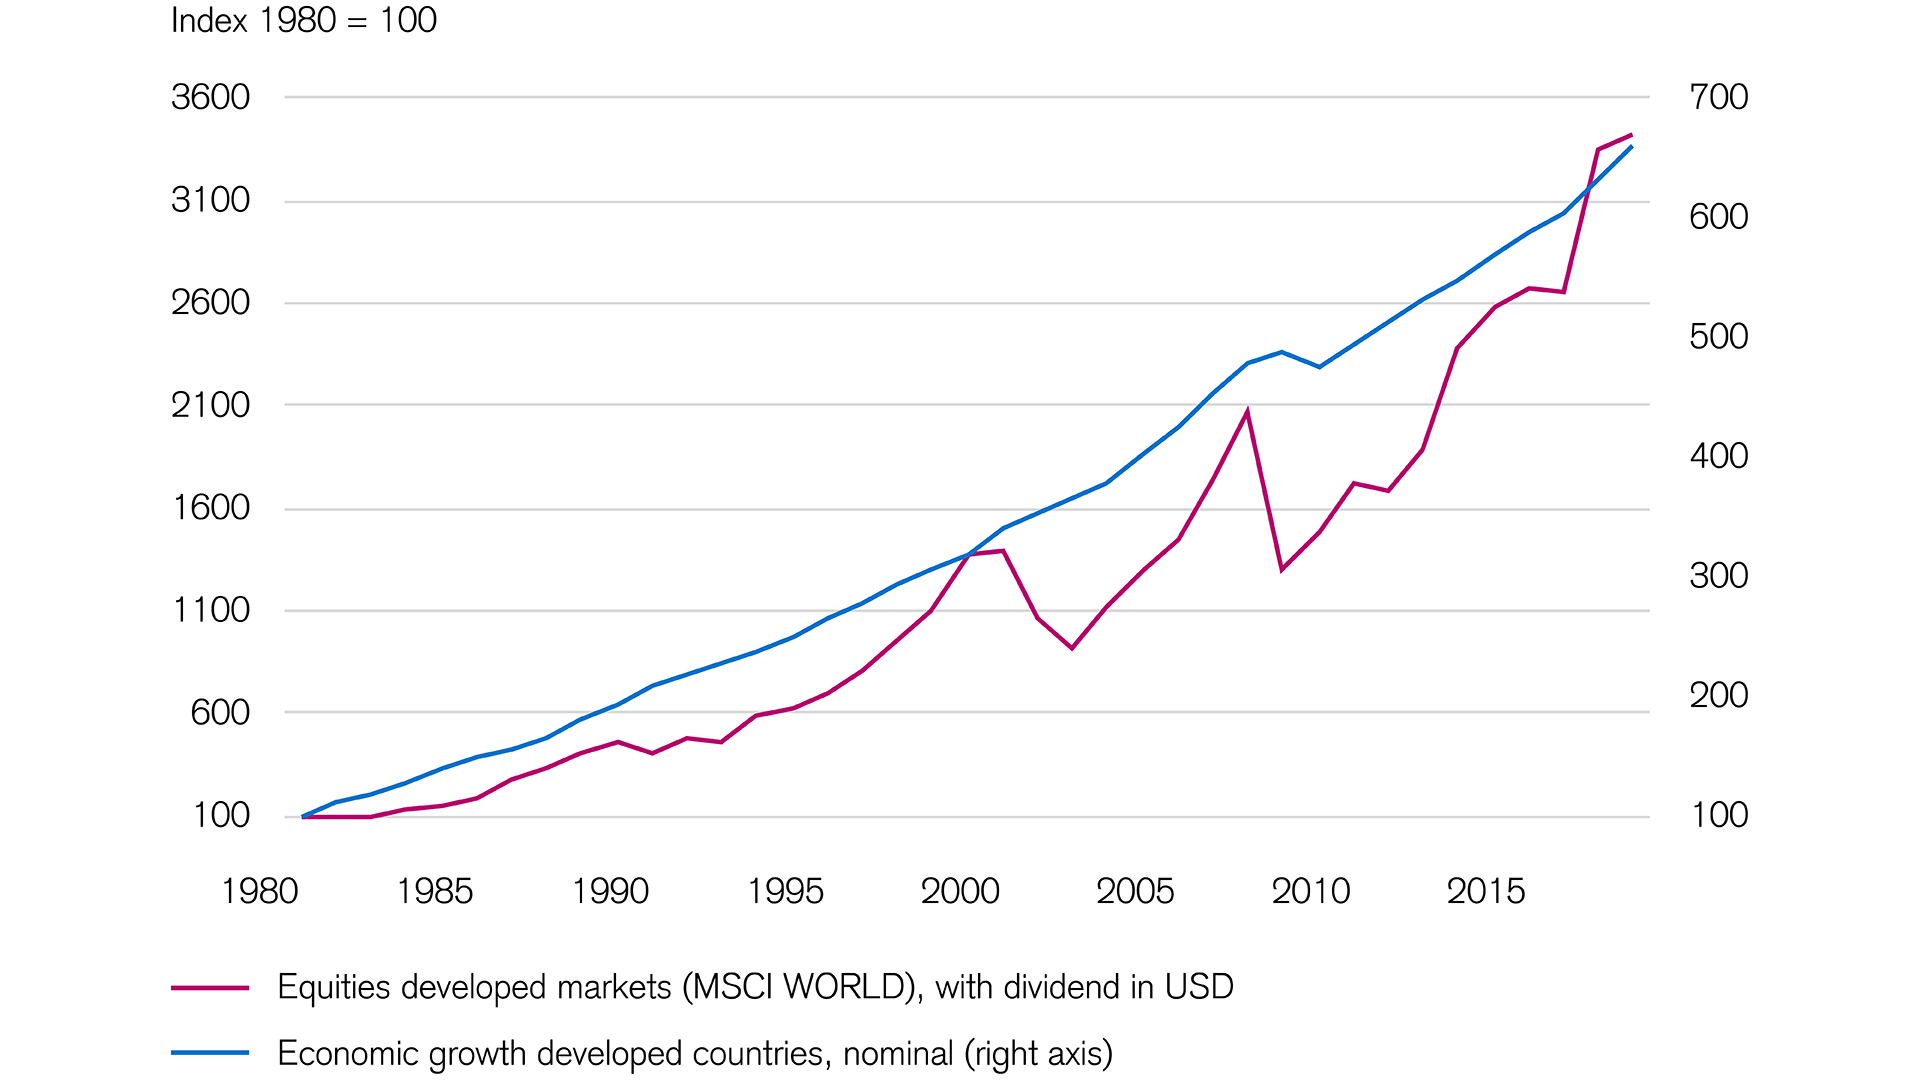 equity markets in developed countries perform well over the long term